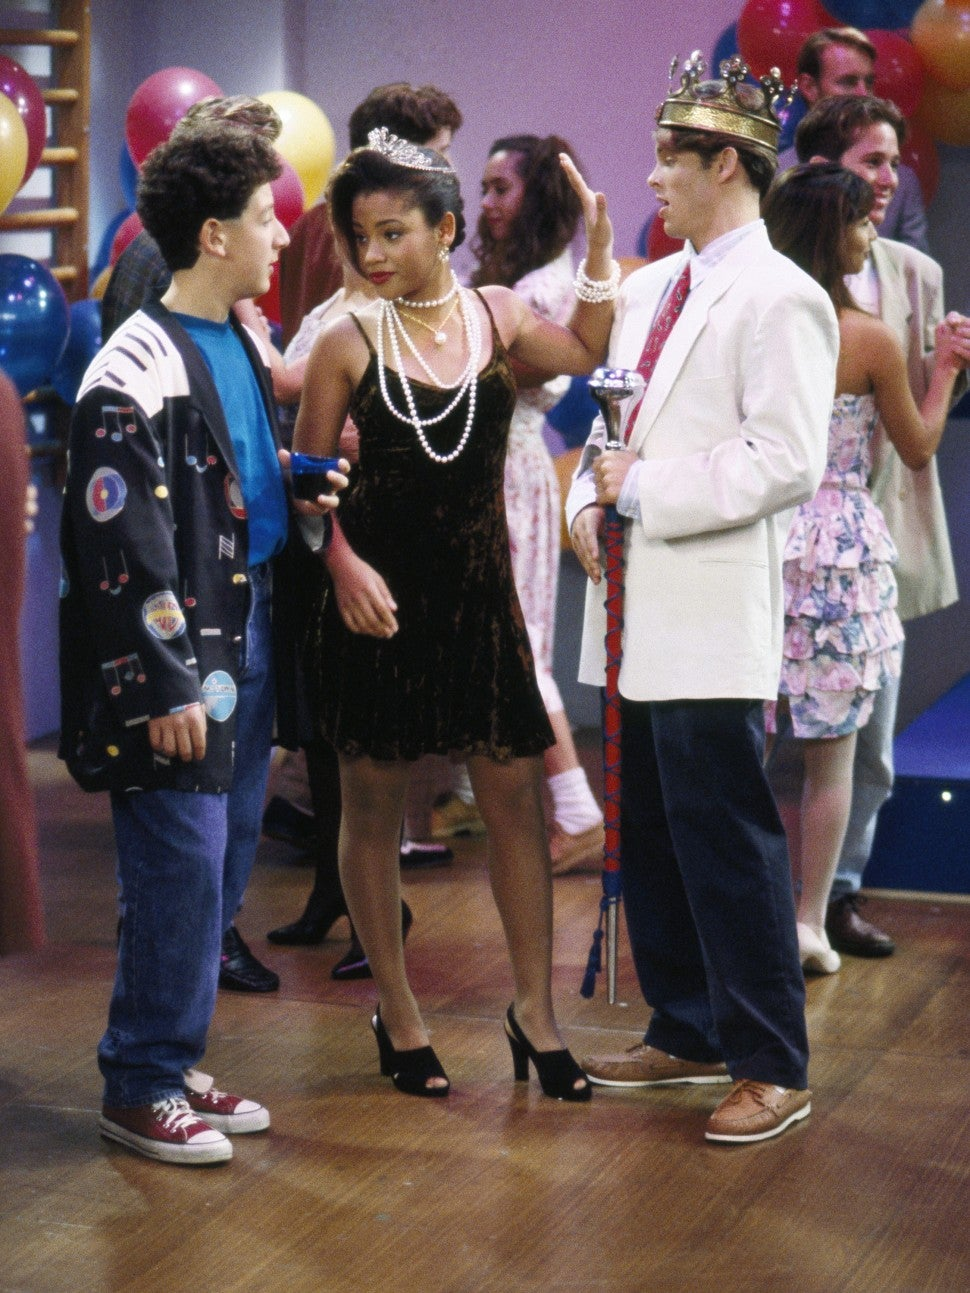 Bianca Lawson as Megan Jones on Saved by the Bell: The New Class